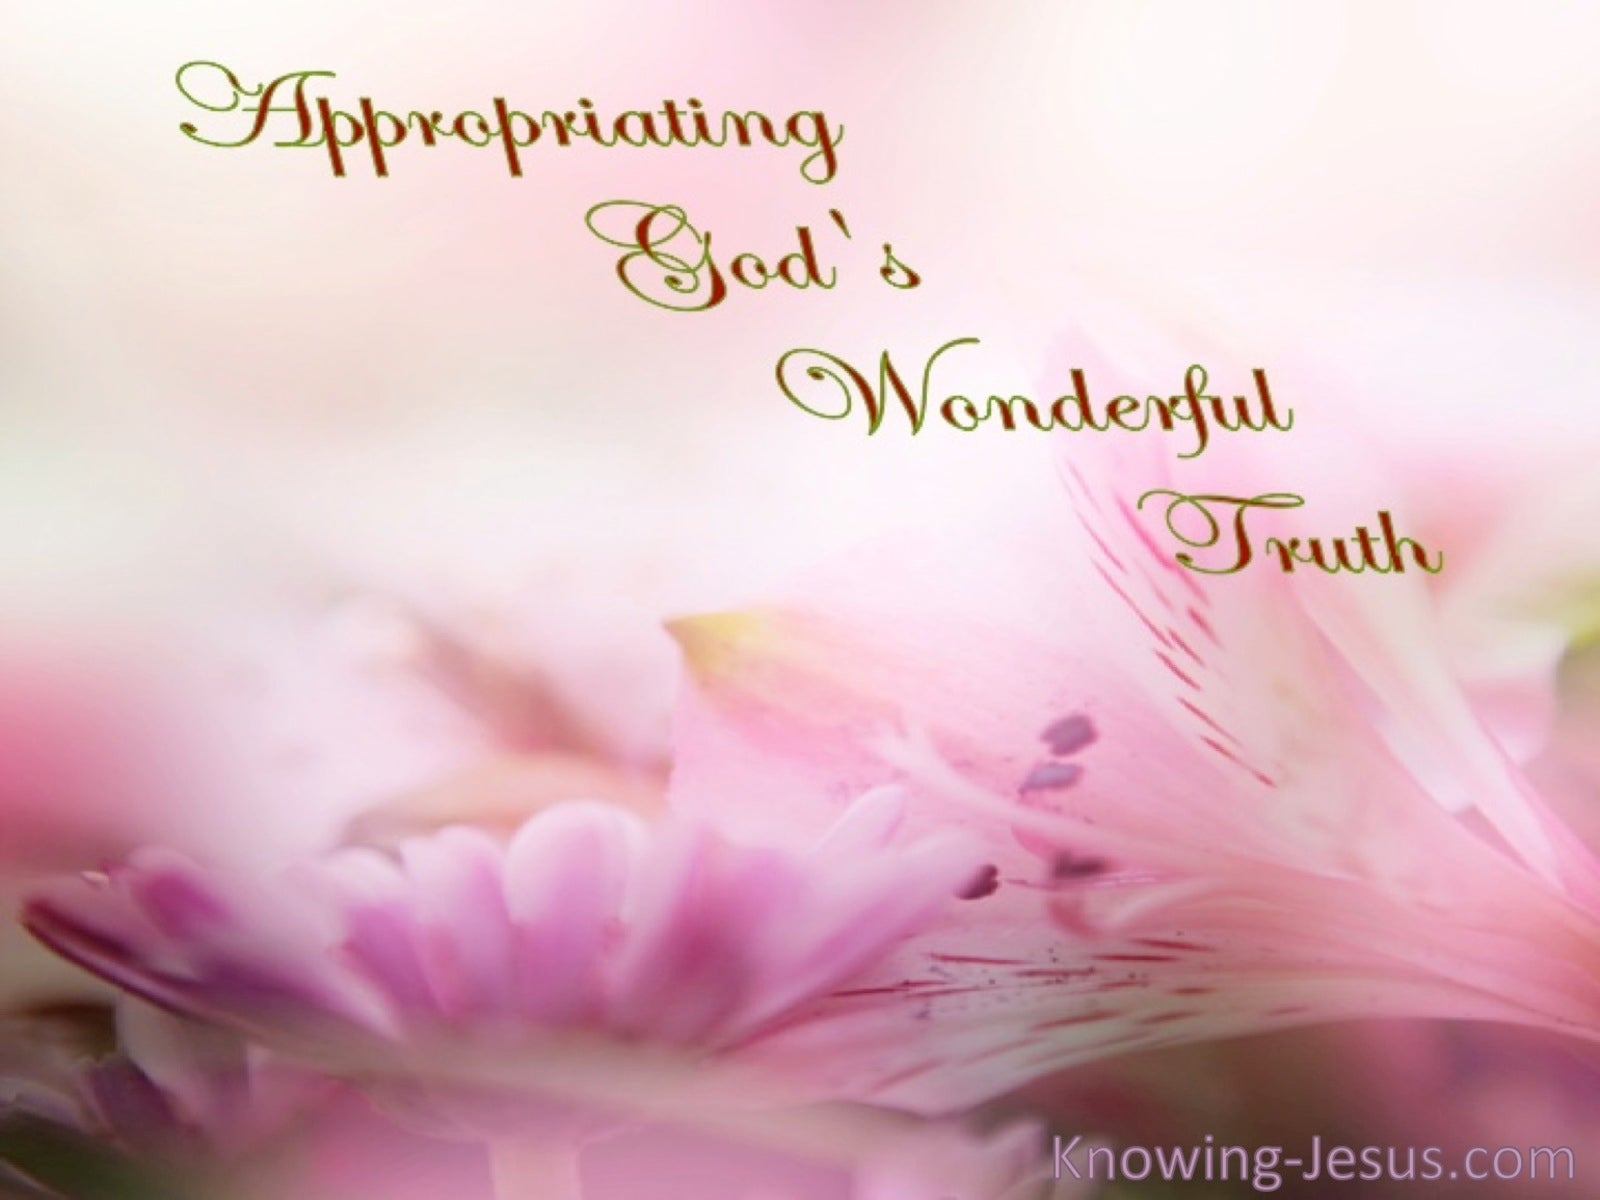 Appropriating God's Wonderful Truth (devotional) (brown)